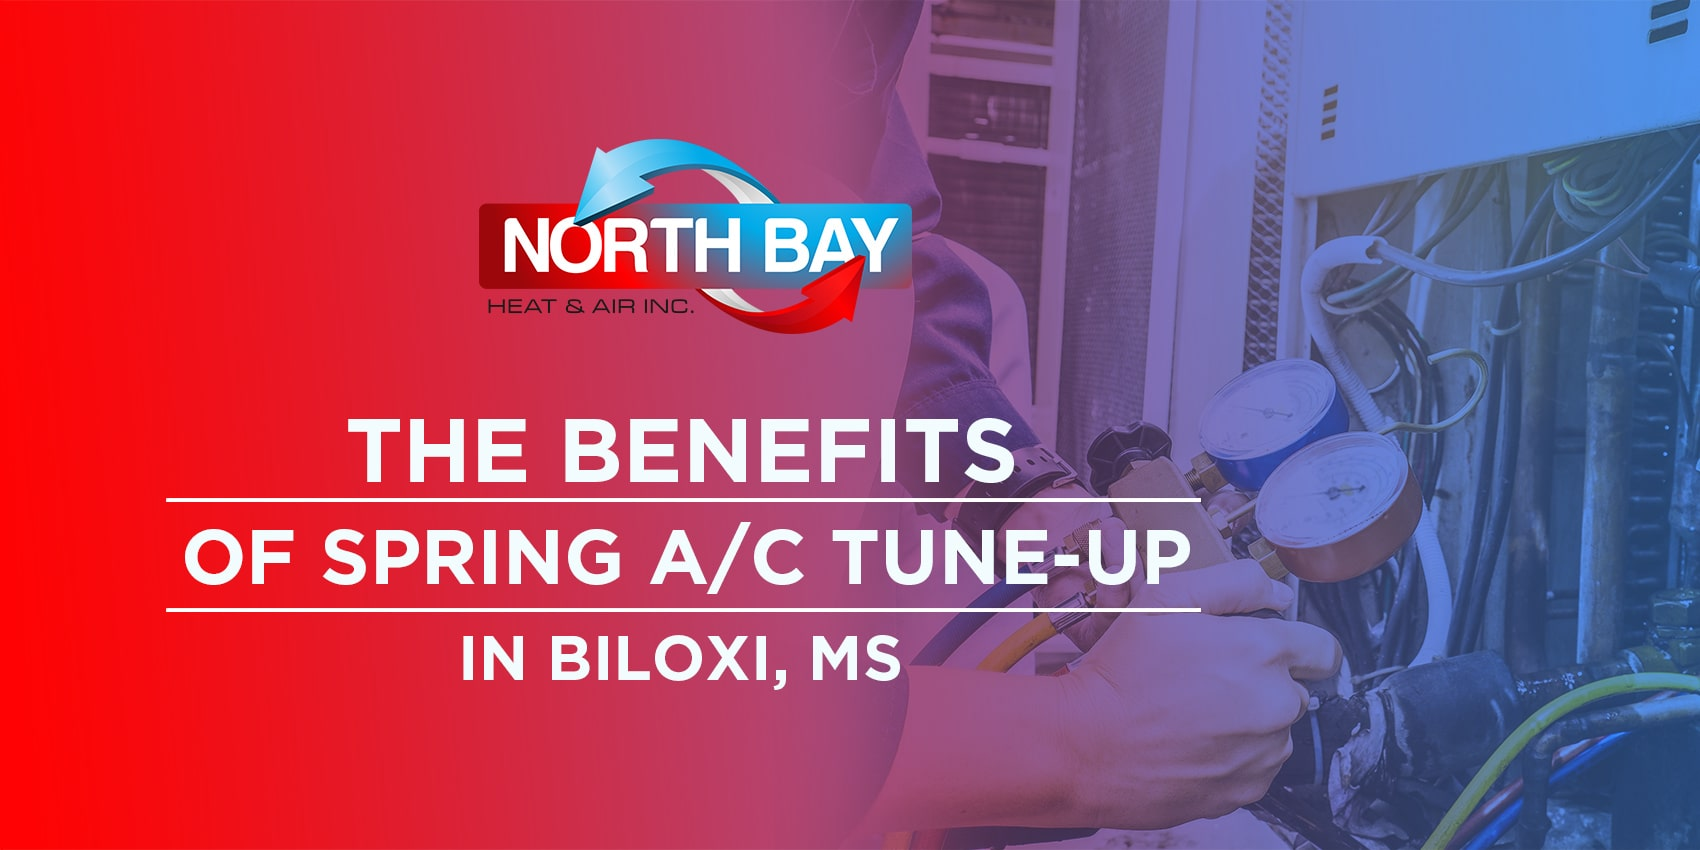 The Benefits of Spring A/C Tune-Up in Biloxi, MS